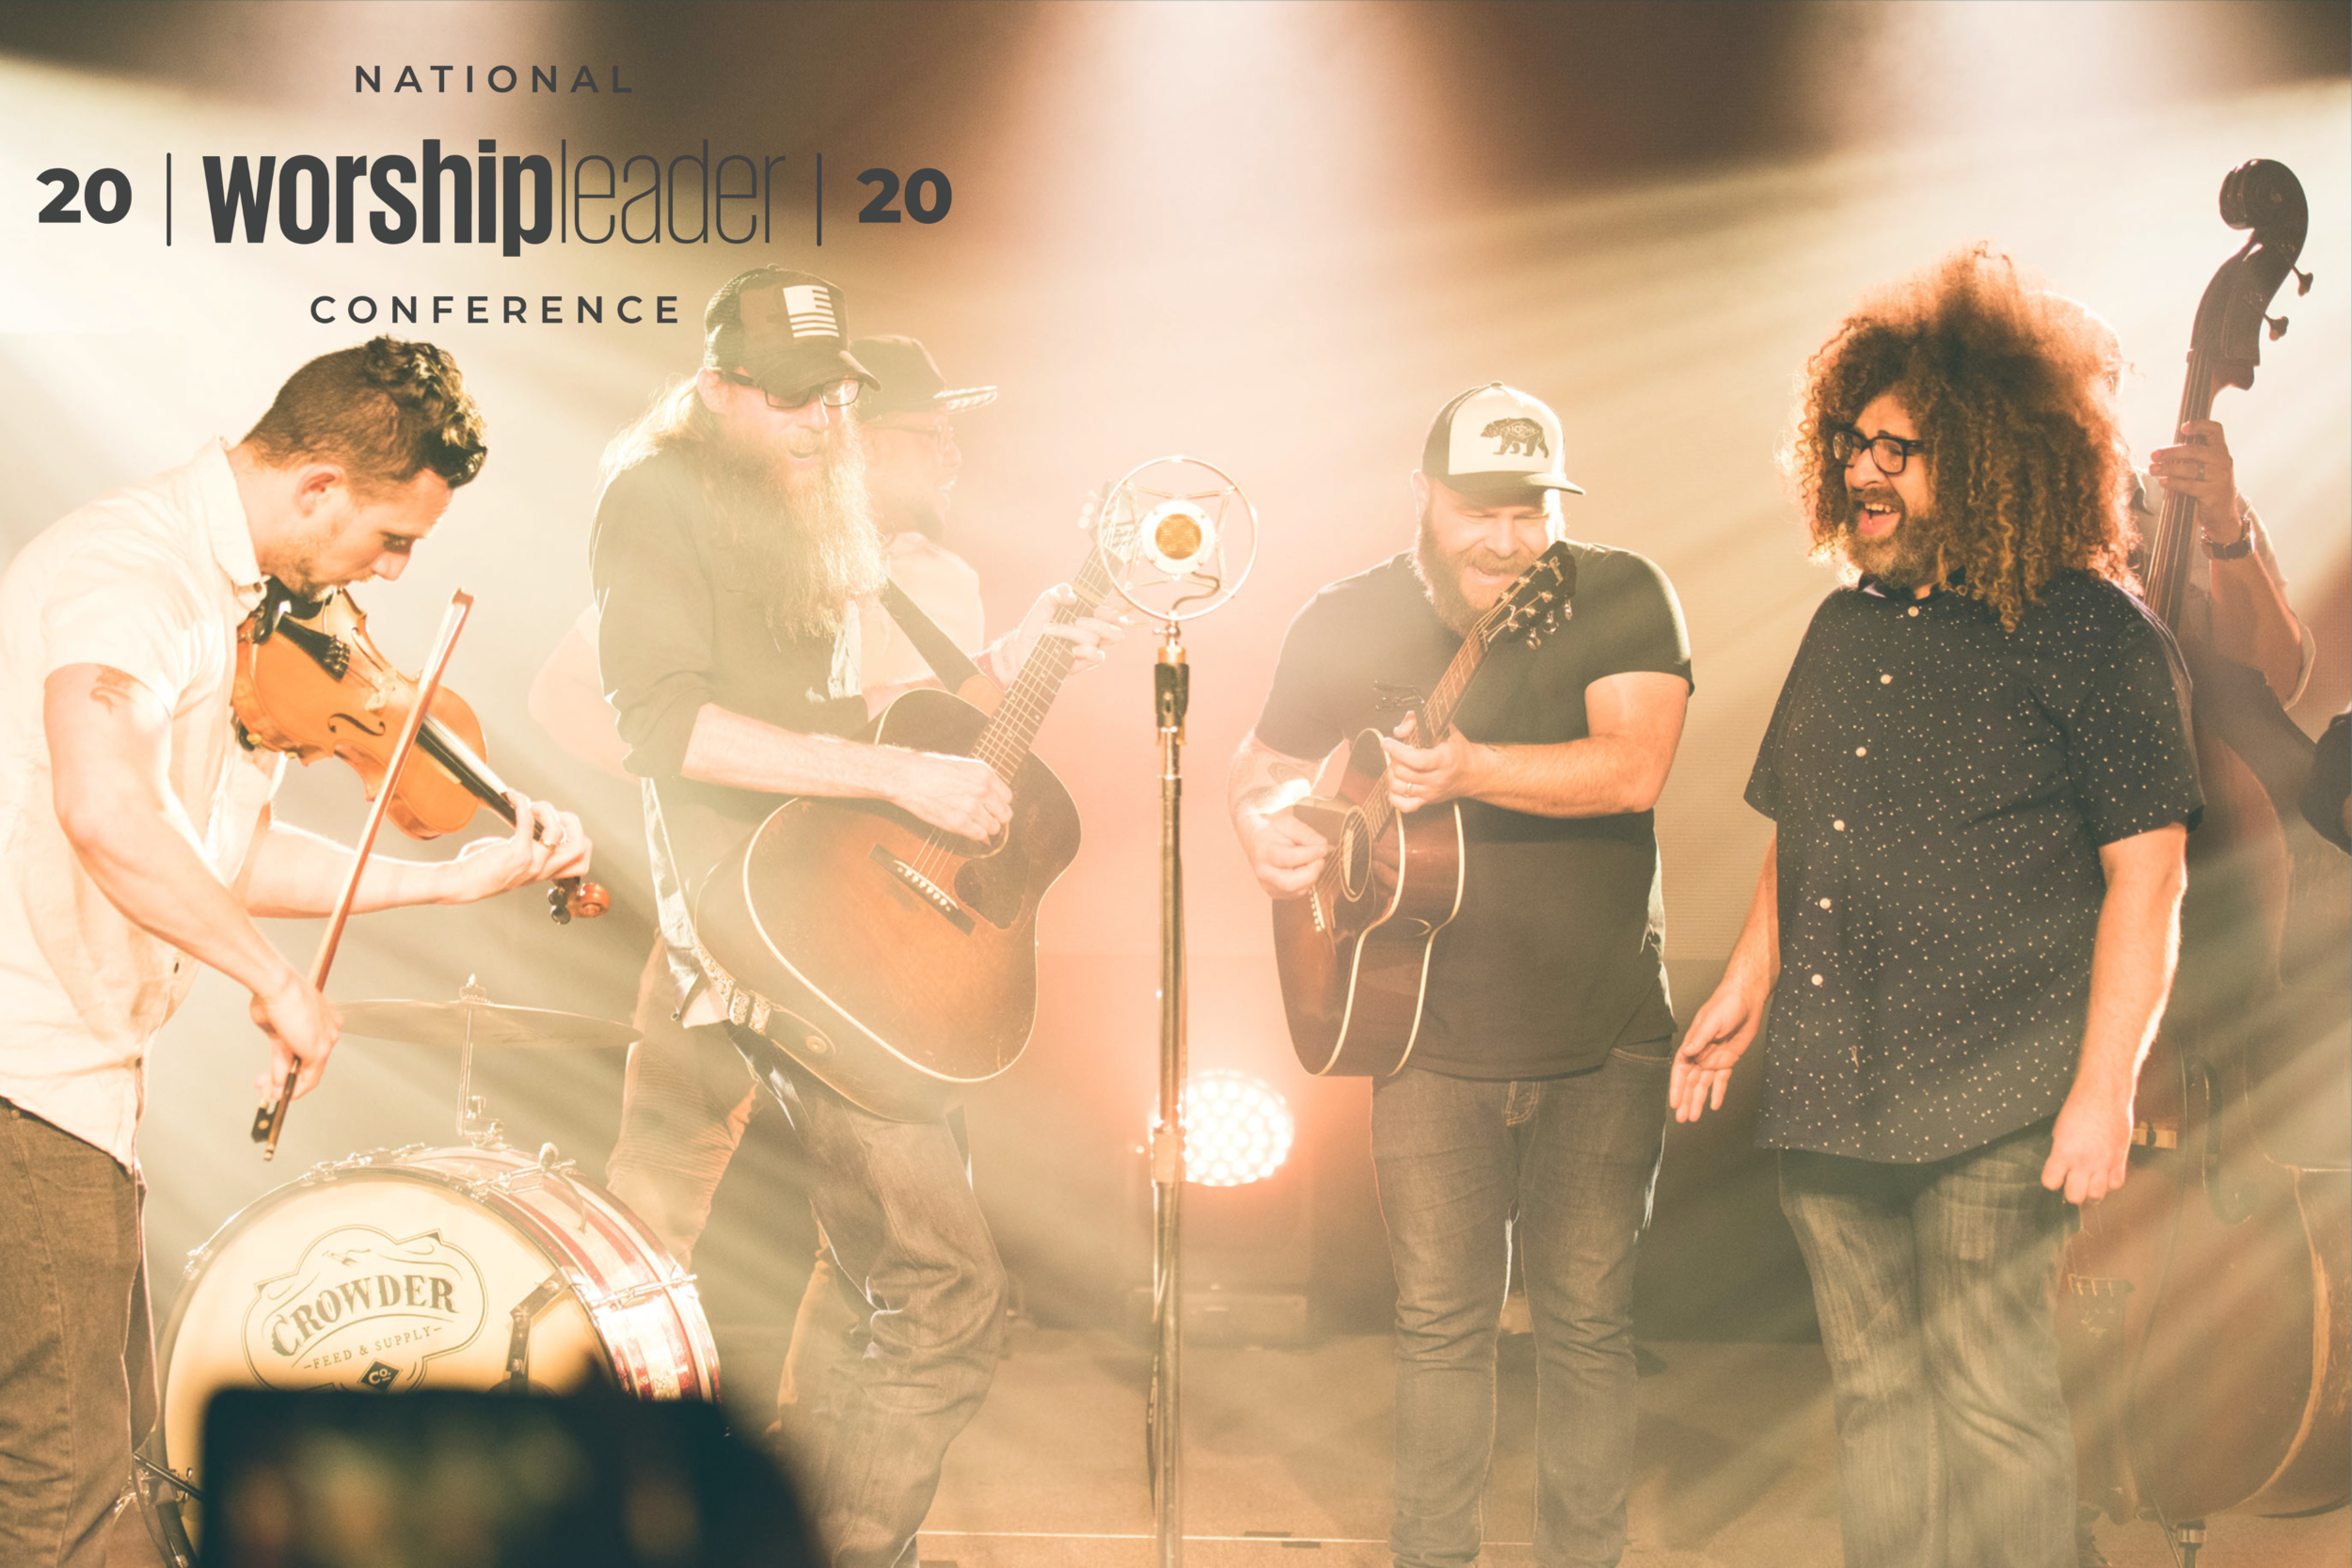 BRINGING THE TRAINING OF WL MAG TO LIVE EVENTS… - Along with our free digital magazine we also offer an annual meet up called the National Worship Leader Conference. A two day training conference that's jam packed with workshops, keynote speakers, nights of worship, and much more.